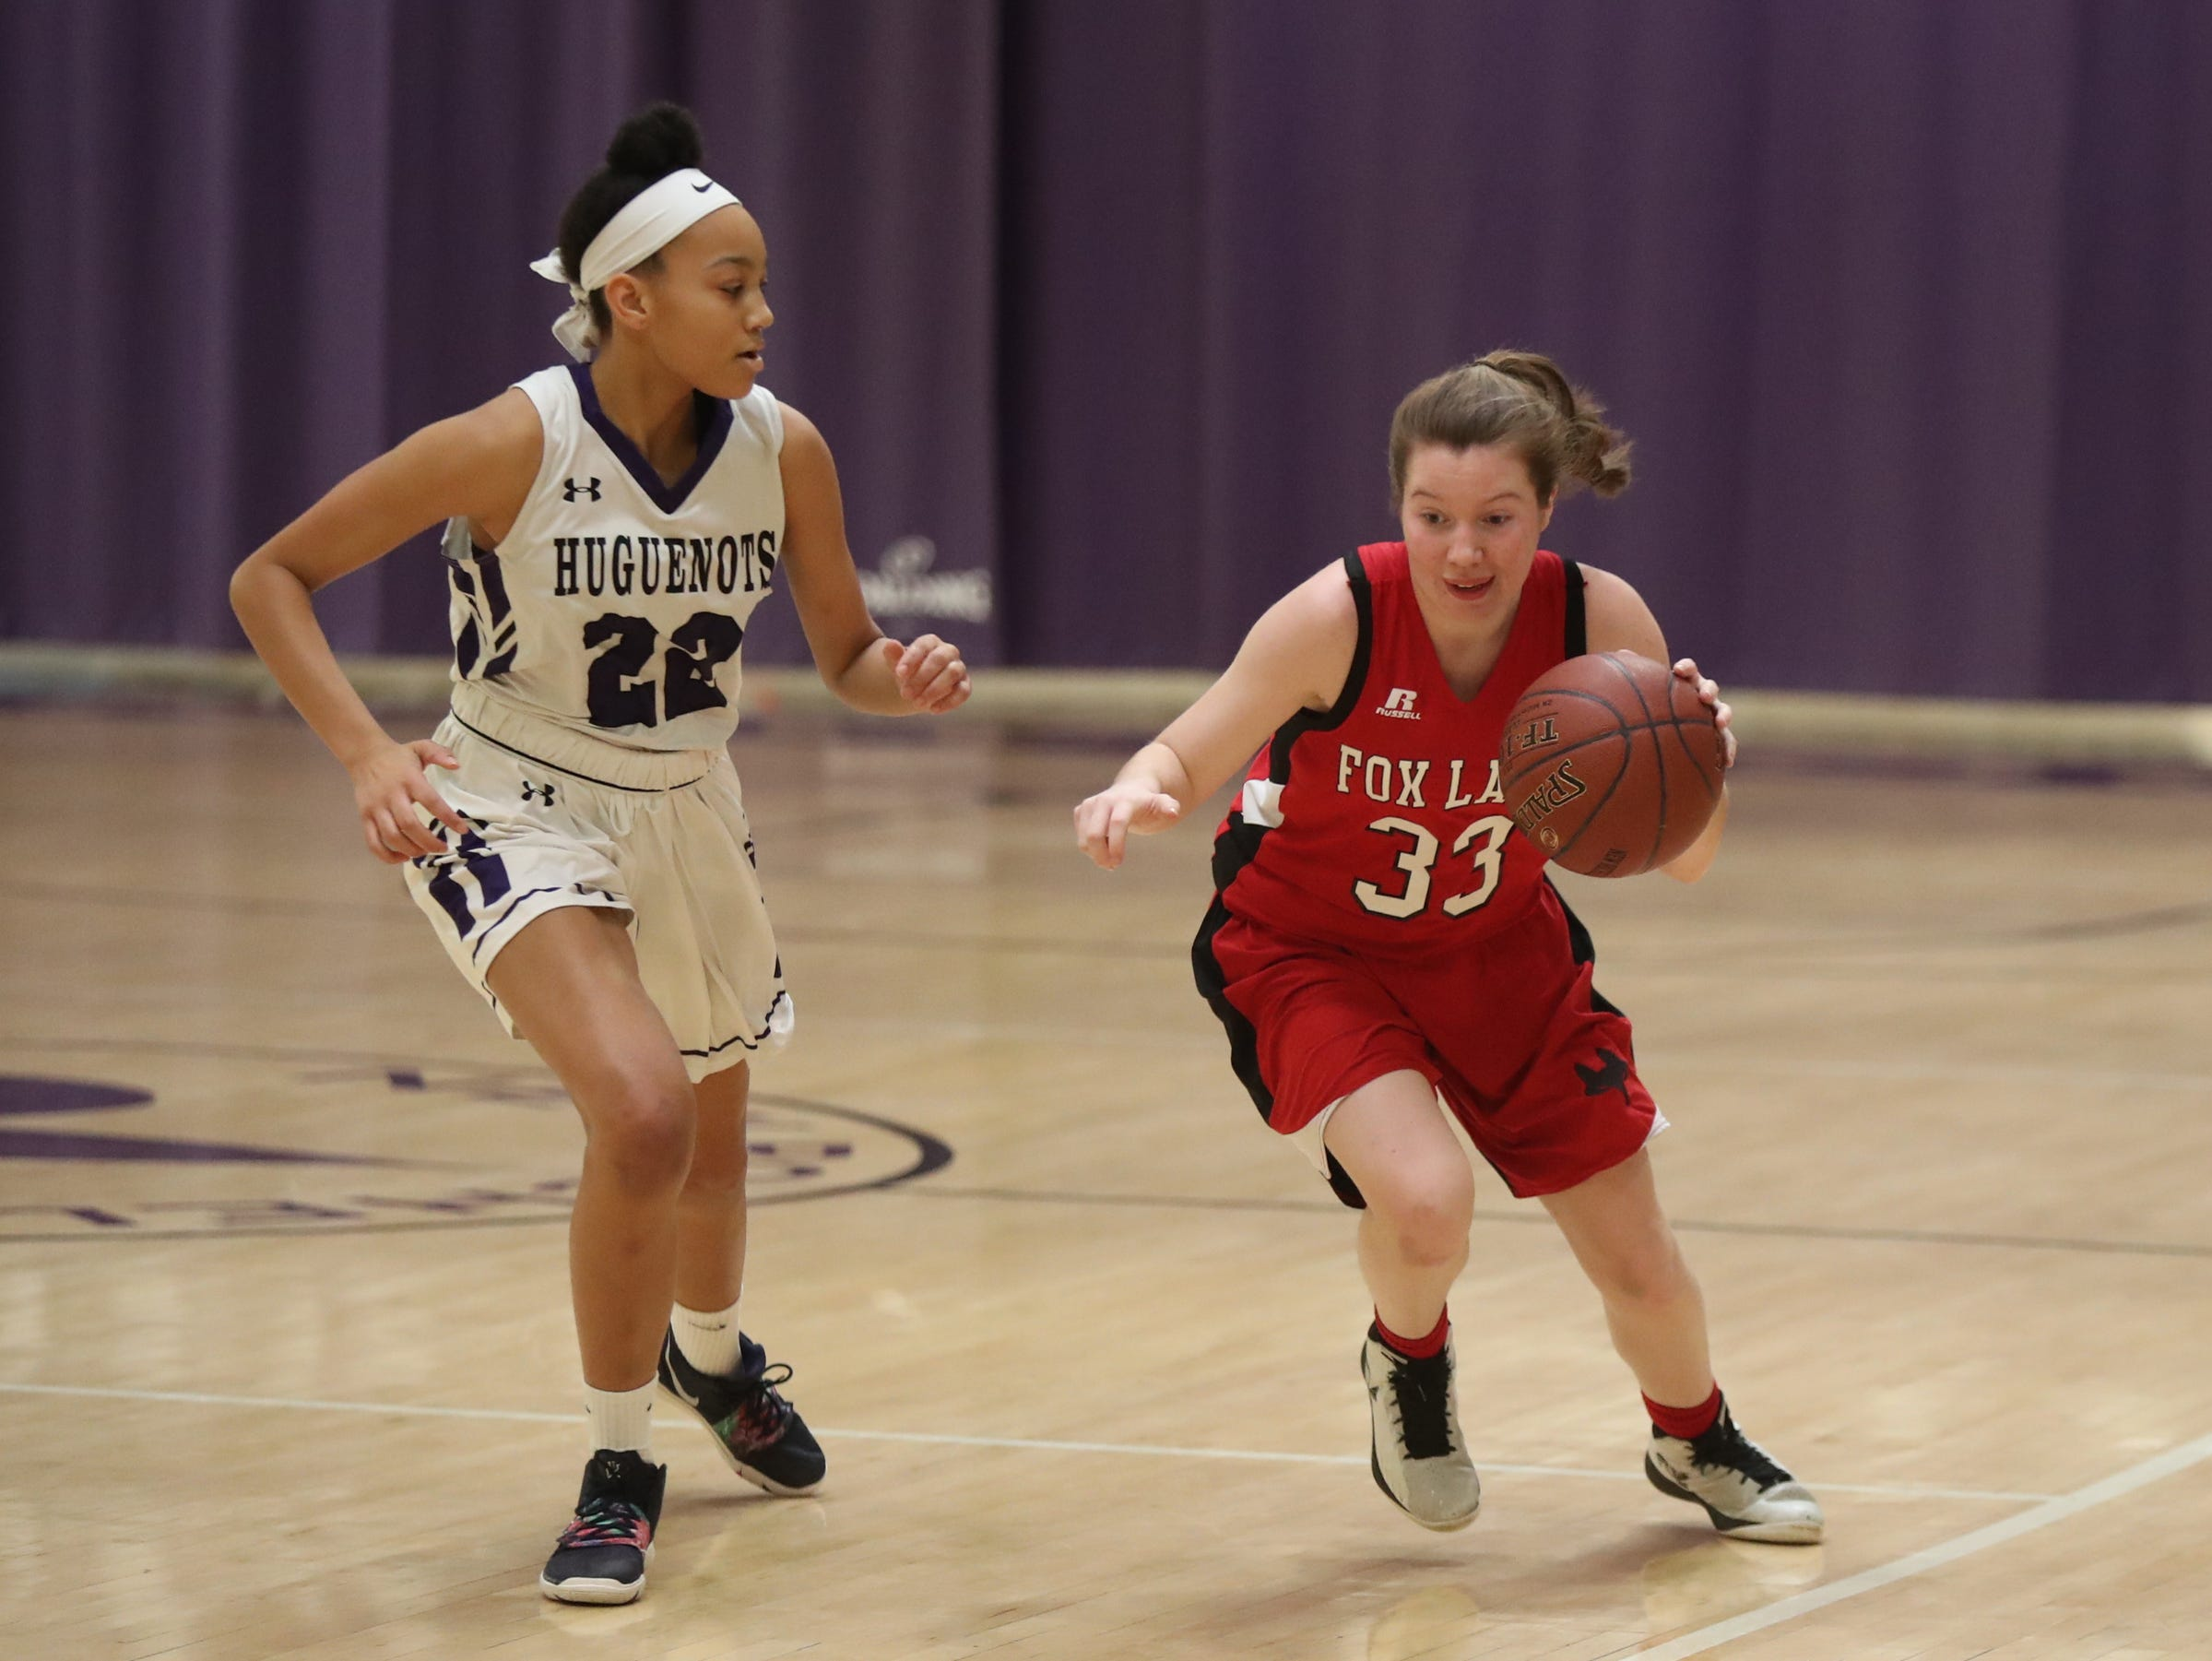 Fox Lane's Suzy Paul (33) works the ball around New Rochelle's Kamara St. Paul (22) in the class AA girls basketball outbracket game at New Rochelle High School in New Rochelle on Saturday, February 16, 2019.